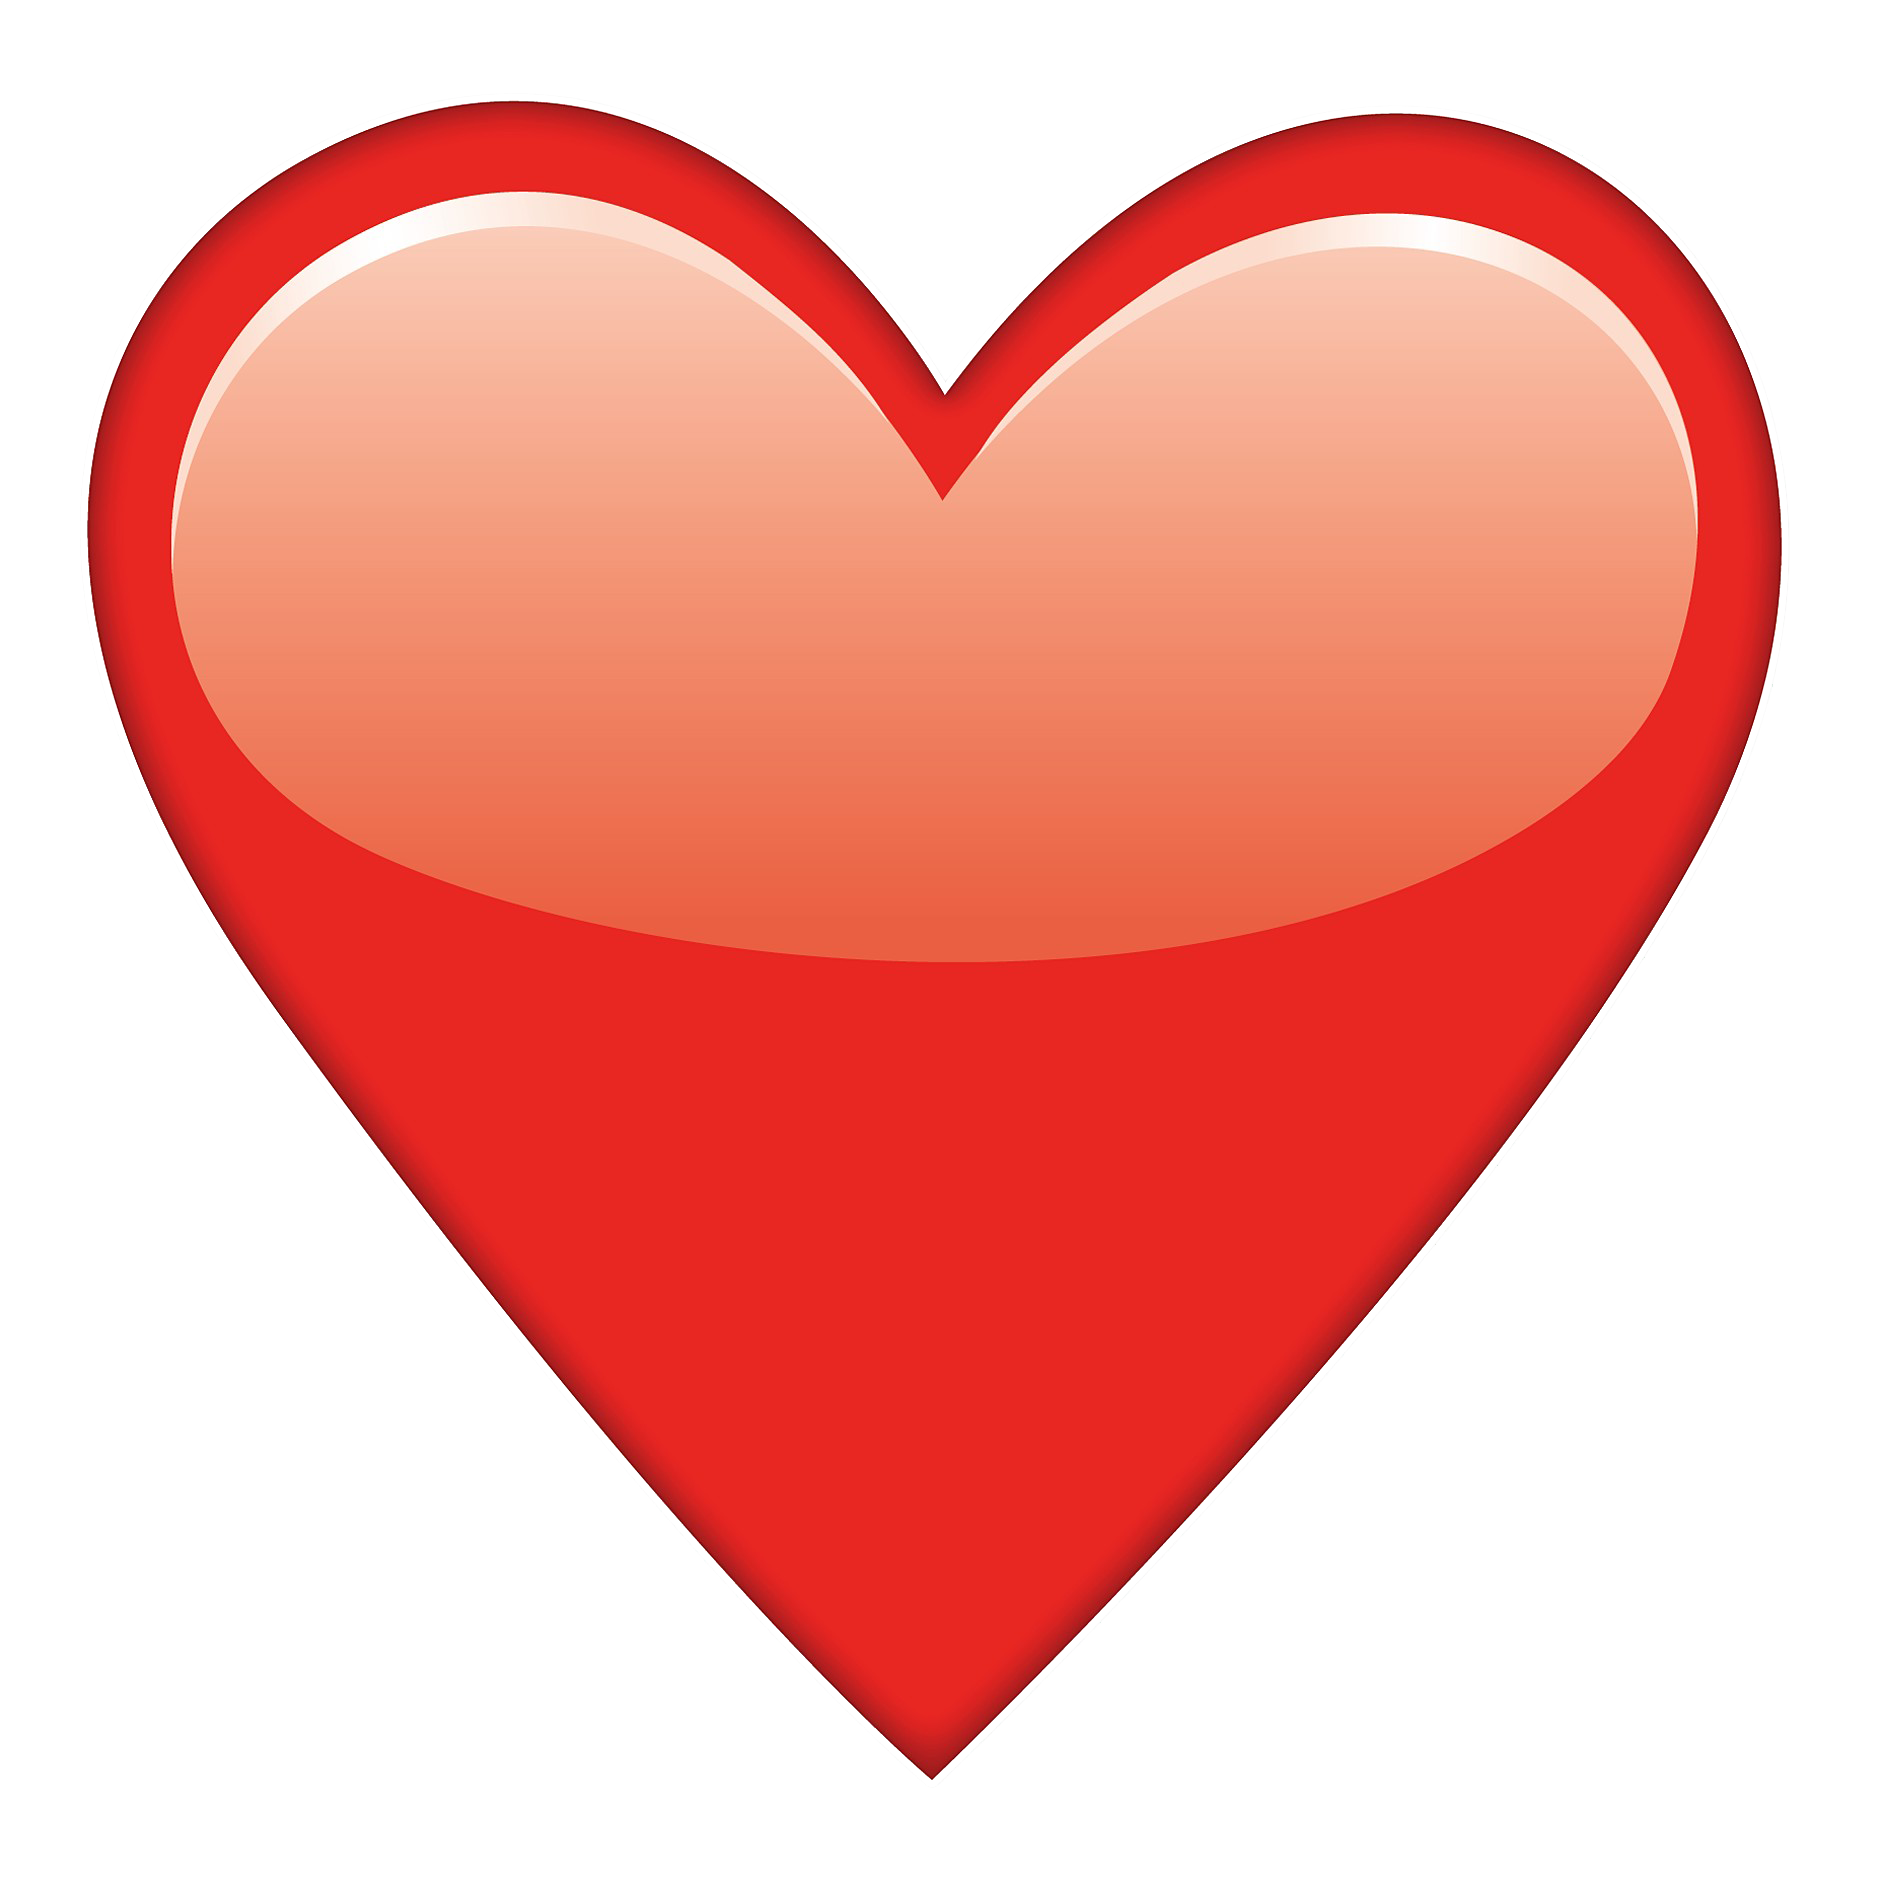 red heart emoji png